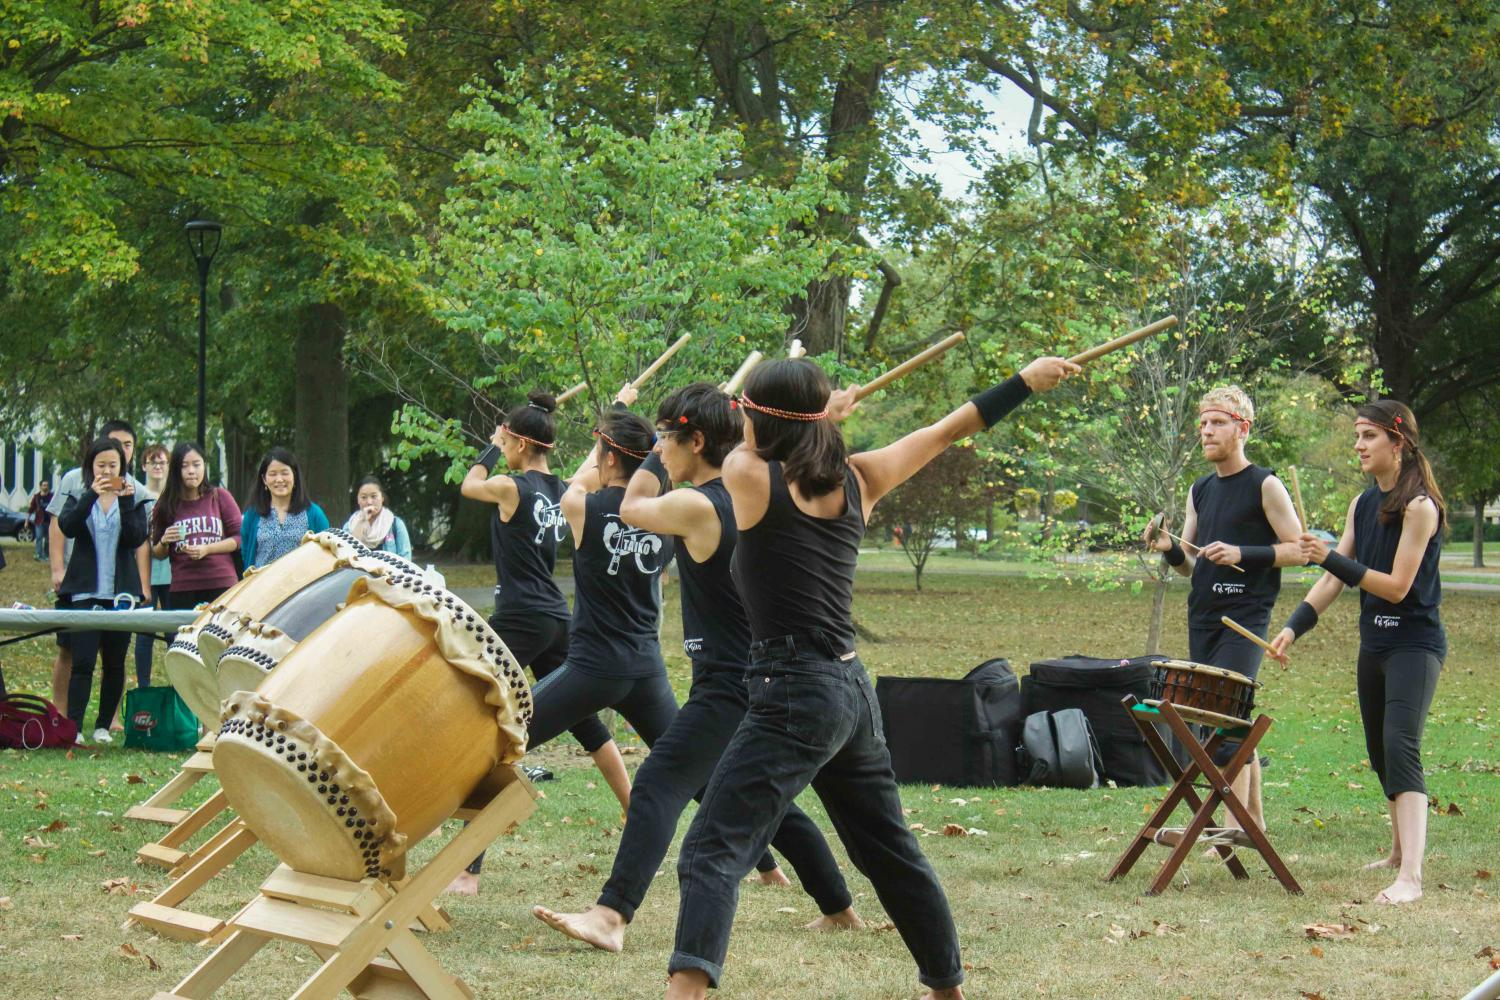 Members of OC Taiko perform during Wednesday's tree planing ceremony in Tappan Square. The ceremony honored saplings grown from seeds that had survived the dropping of the atomic bomb at Hiroshima.